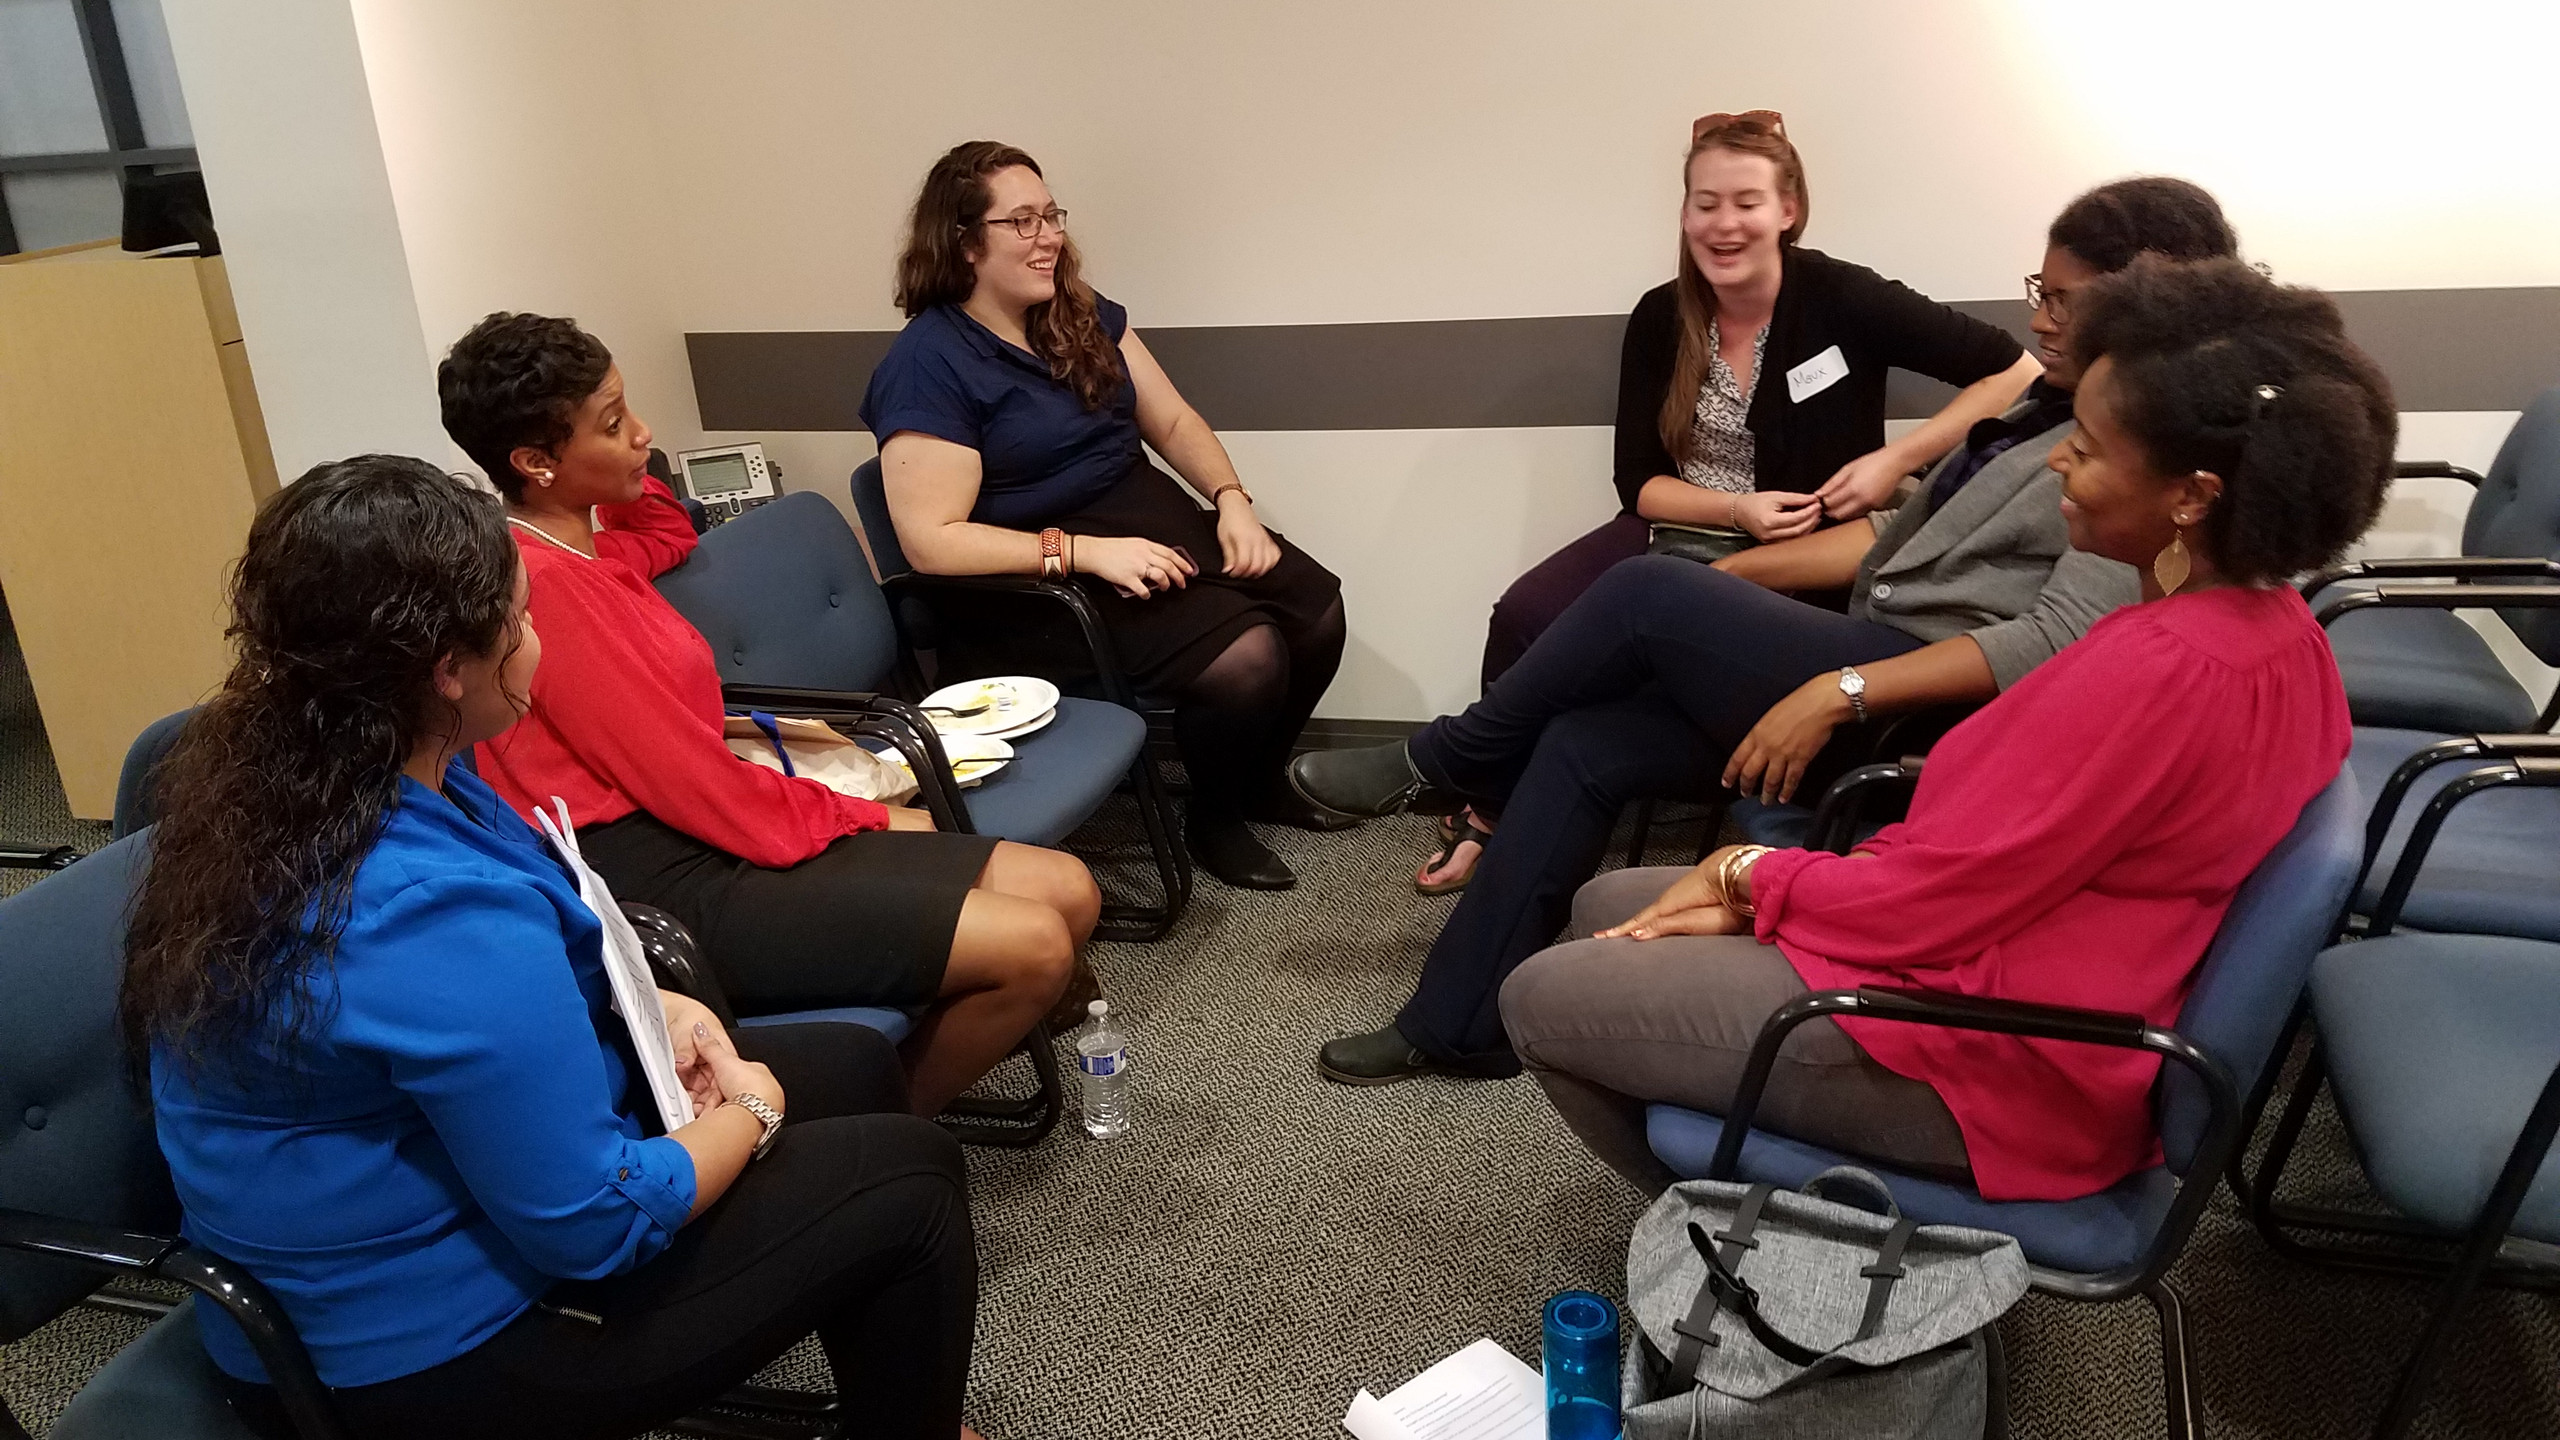 APA-IL Diversity Panel, networking and refreshments with students of the Society for Black Urban Planners (SBUP), Latino Planning Organization for Development, Education, and Regeneration (LPODER), and Women in Planning and Public Affairs (WPPA) - October 5, 2017 (photo by Jake Seid, AICP)